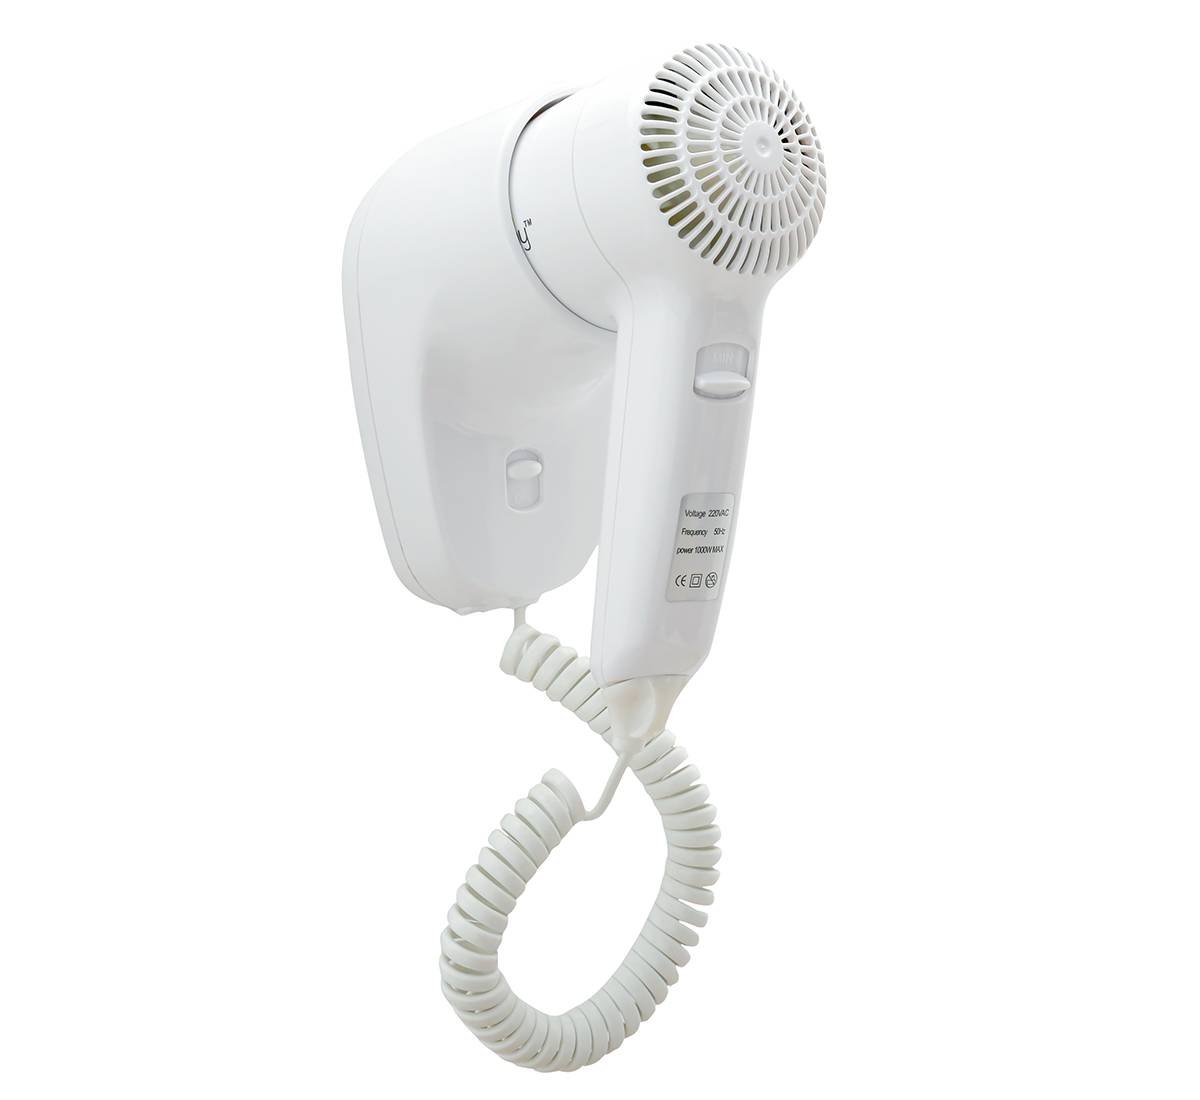 Professional 1000W Wall Mounted Hair Dryer DPHD0002